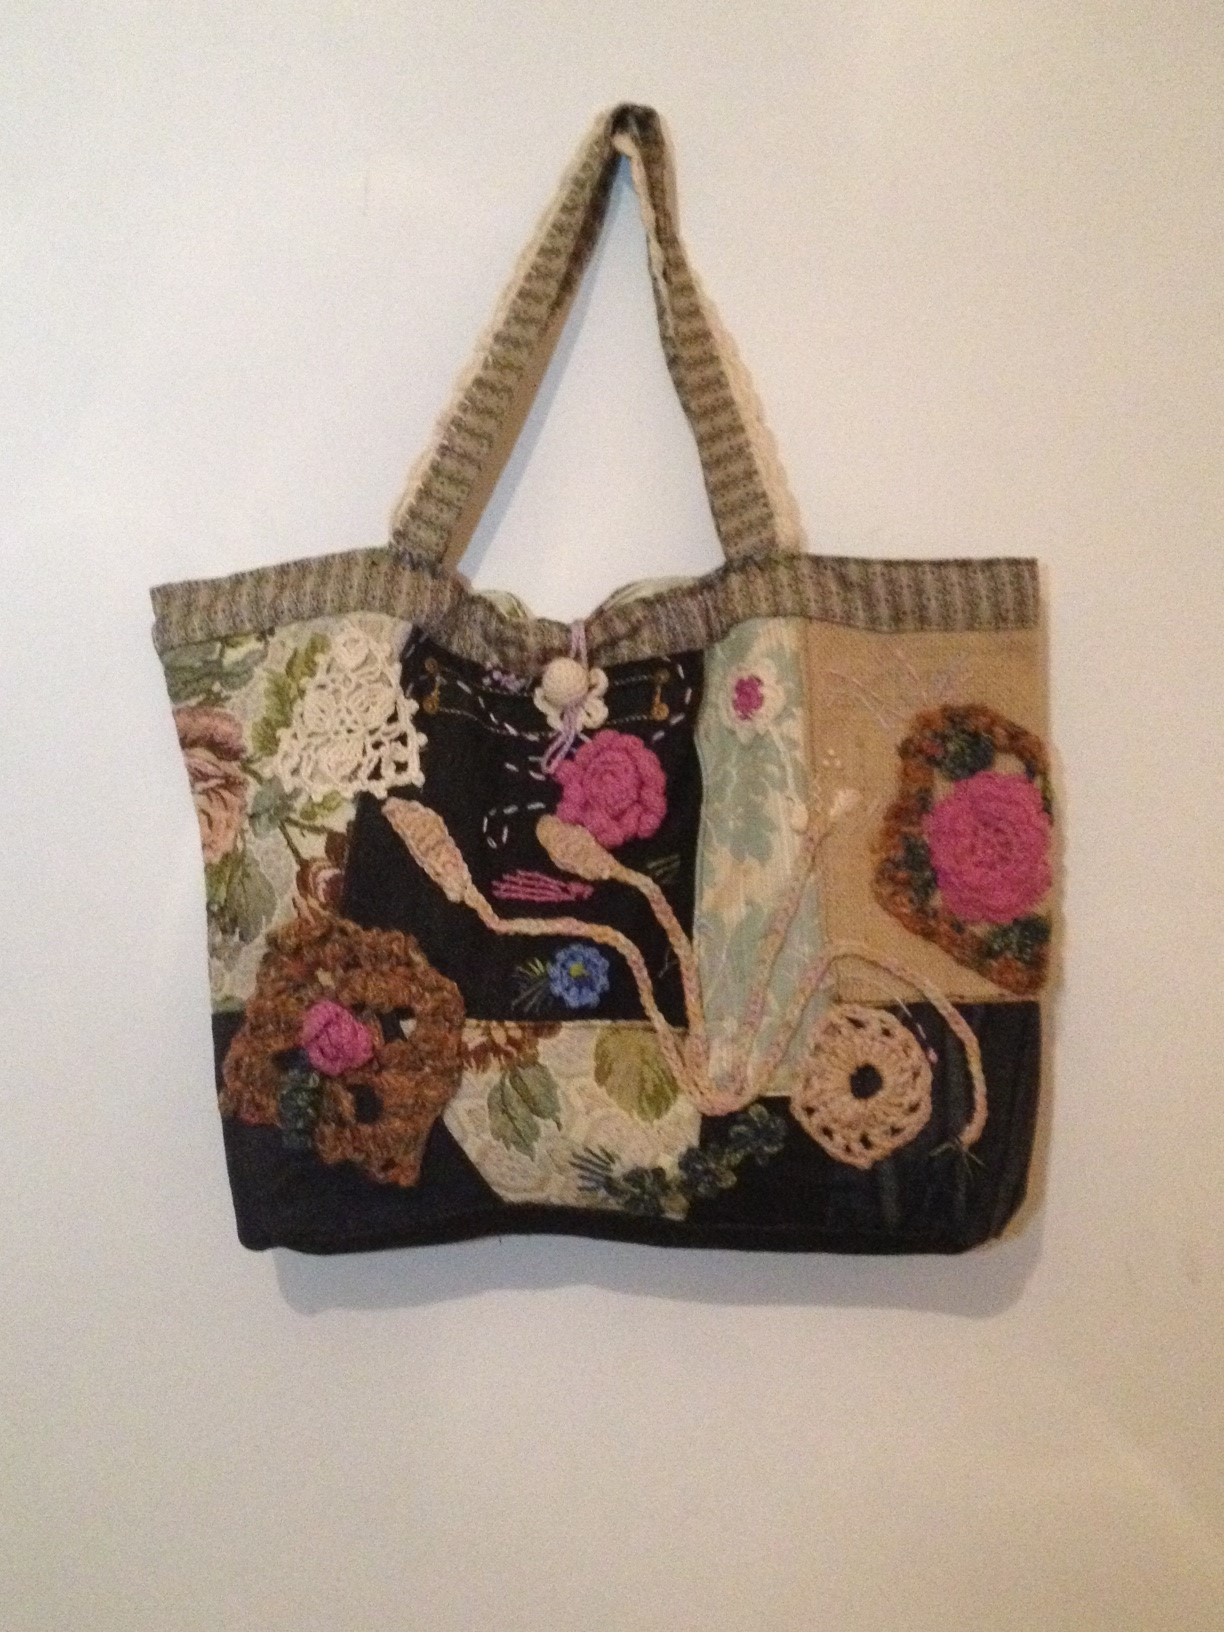 Bags by Lorena C.